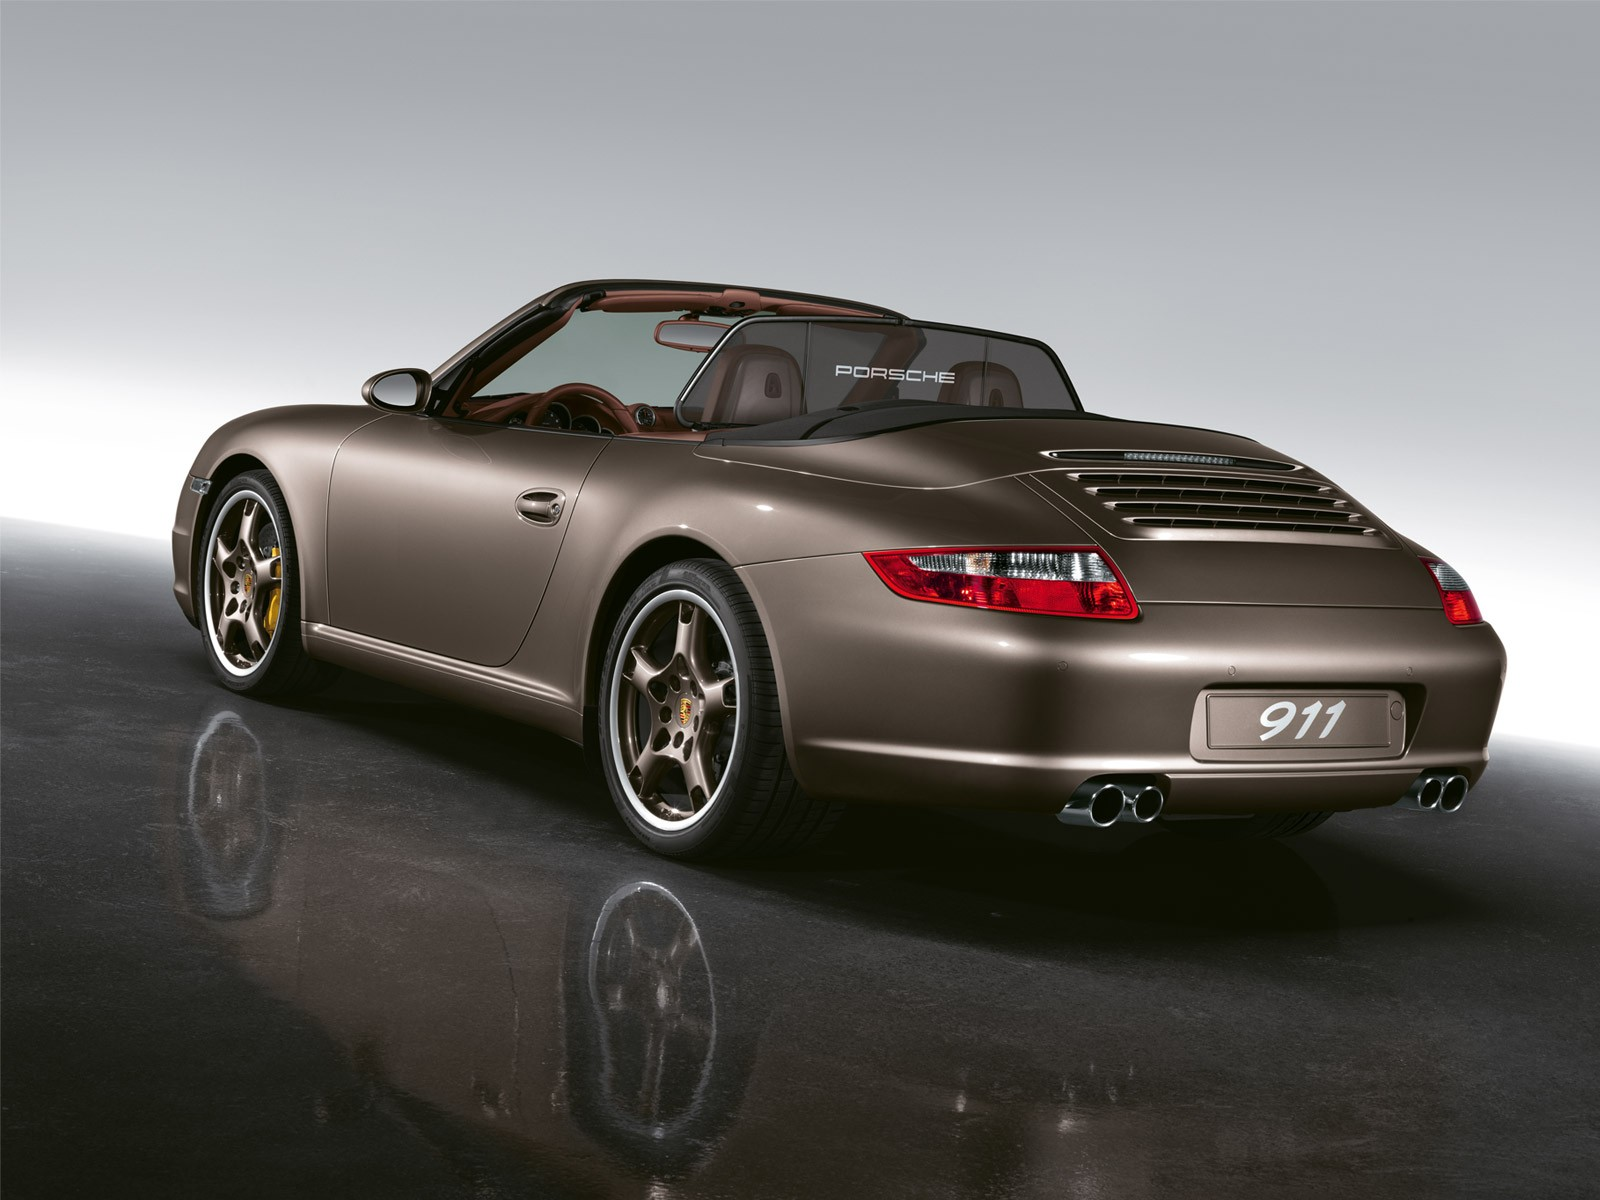 porsche 911 carrera s cabriolet 997 specs 2005 2006. Black Bedroom Furniture Sets. Home Design Ideas